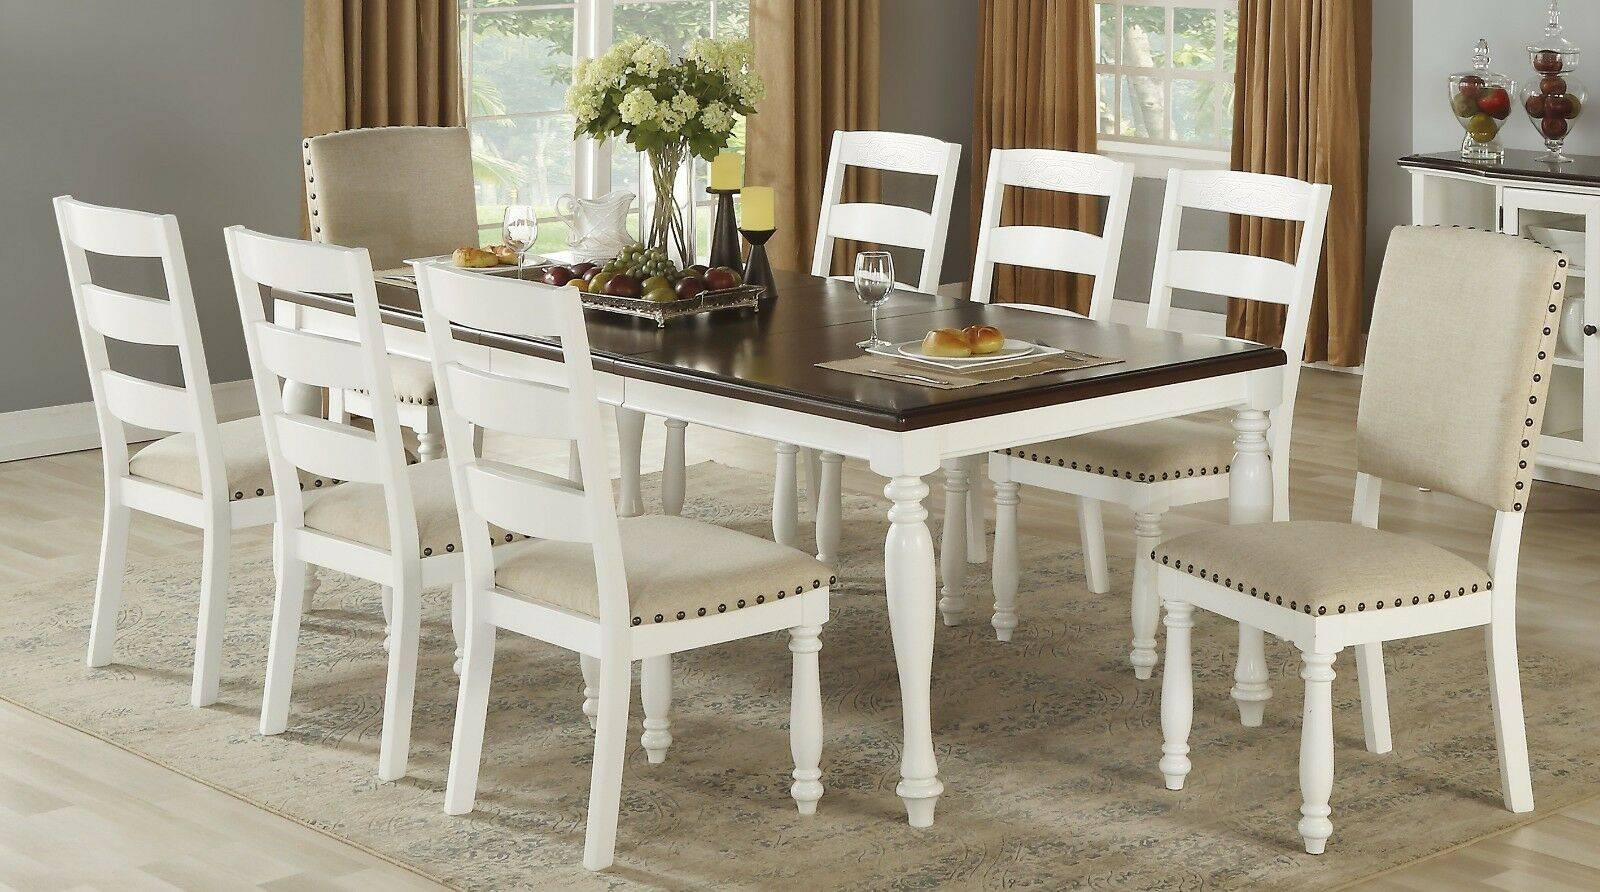 Astounding Top Modern Dining Table Best Farmhouse Tables Pertaining To Best And Newest Chapman Round Marble Dining Tables (View 12 of 25)